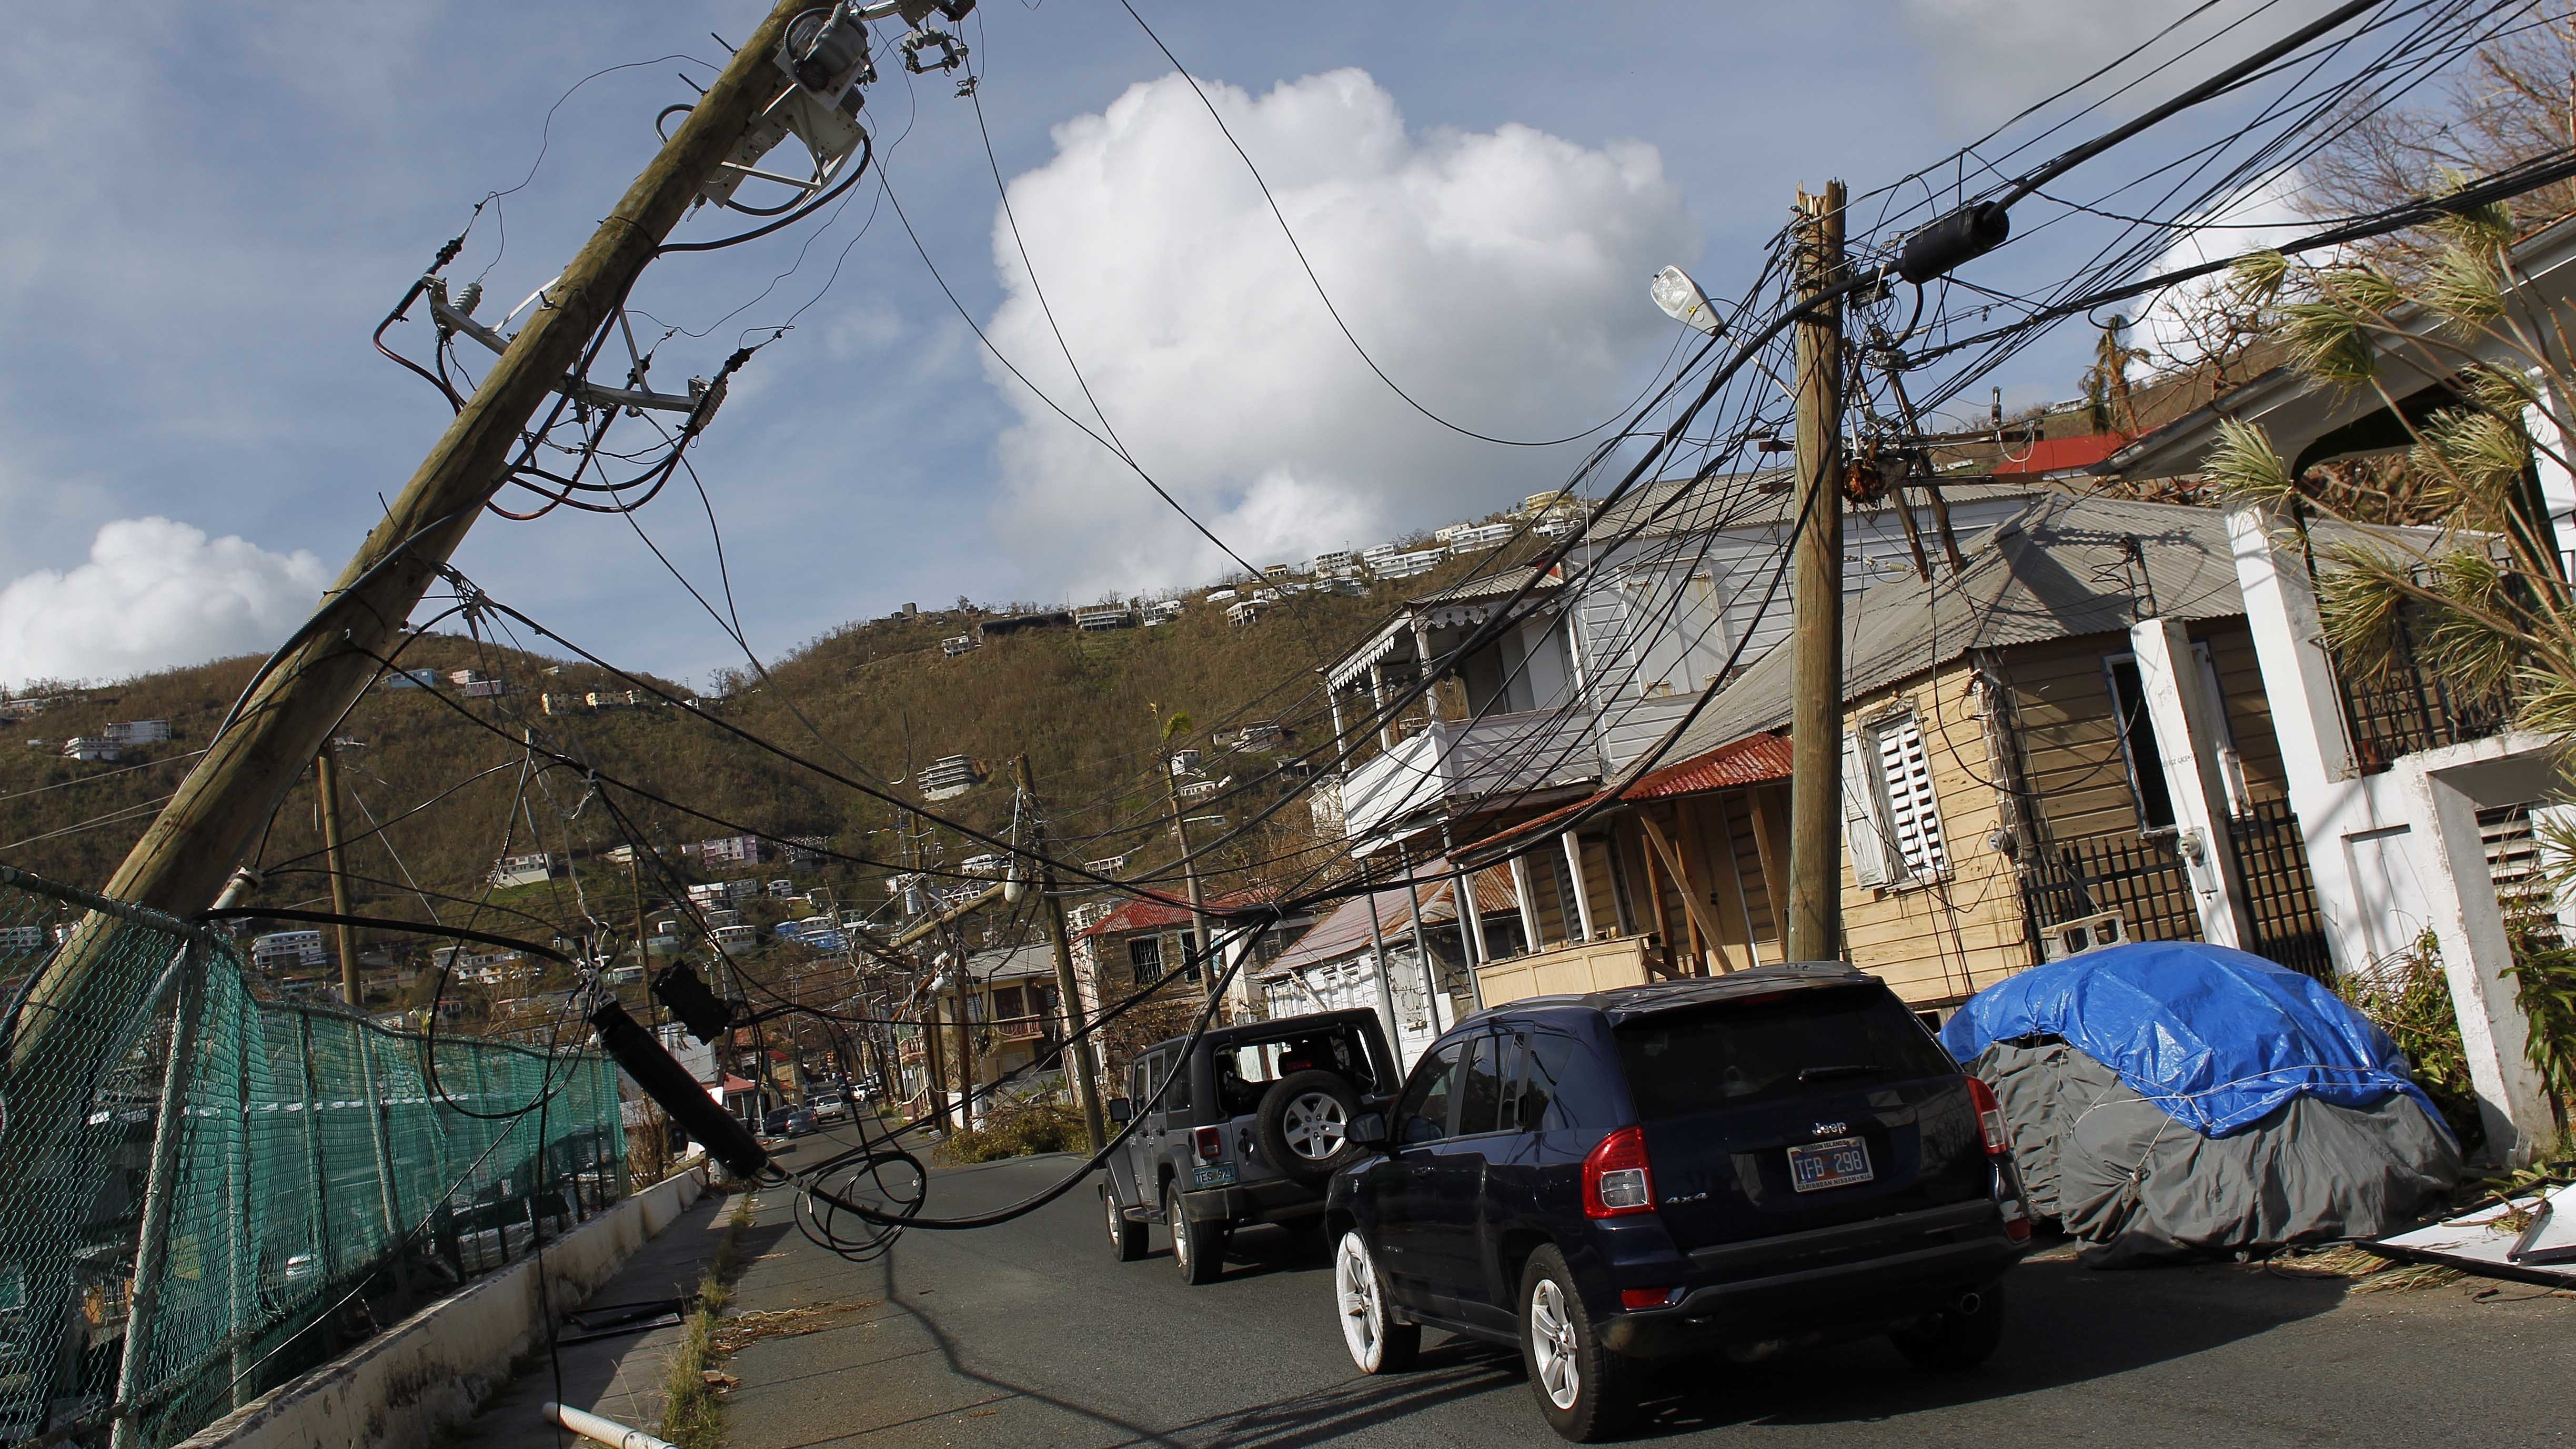 Damaged power lines hang over a street after Hurricane Irma hit the U.S. Virgin Islands on Sept. 6, 2017. That same month, another Category 5 hurricane hit the U.S. territory.